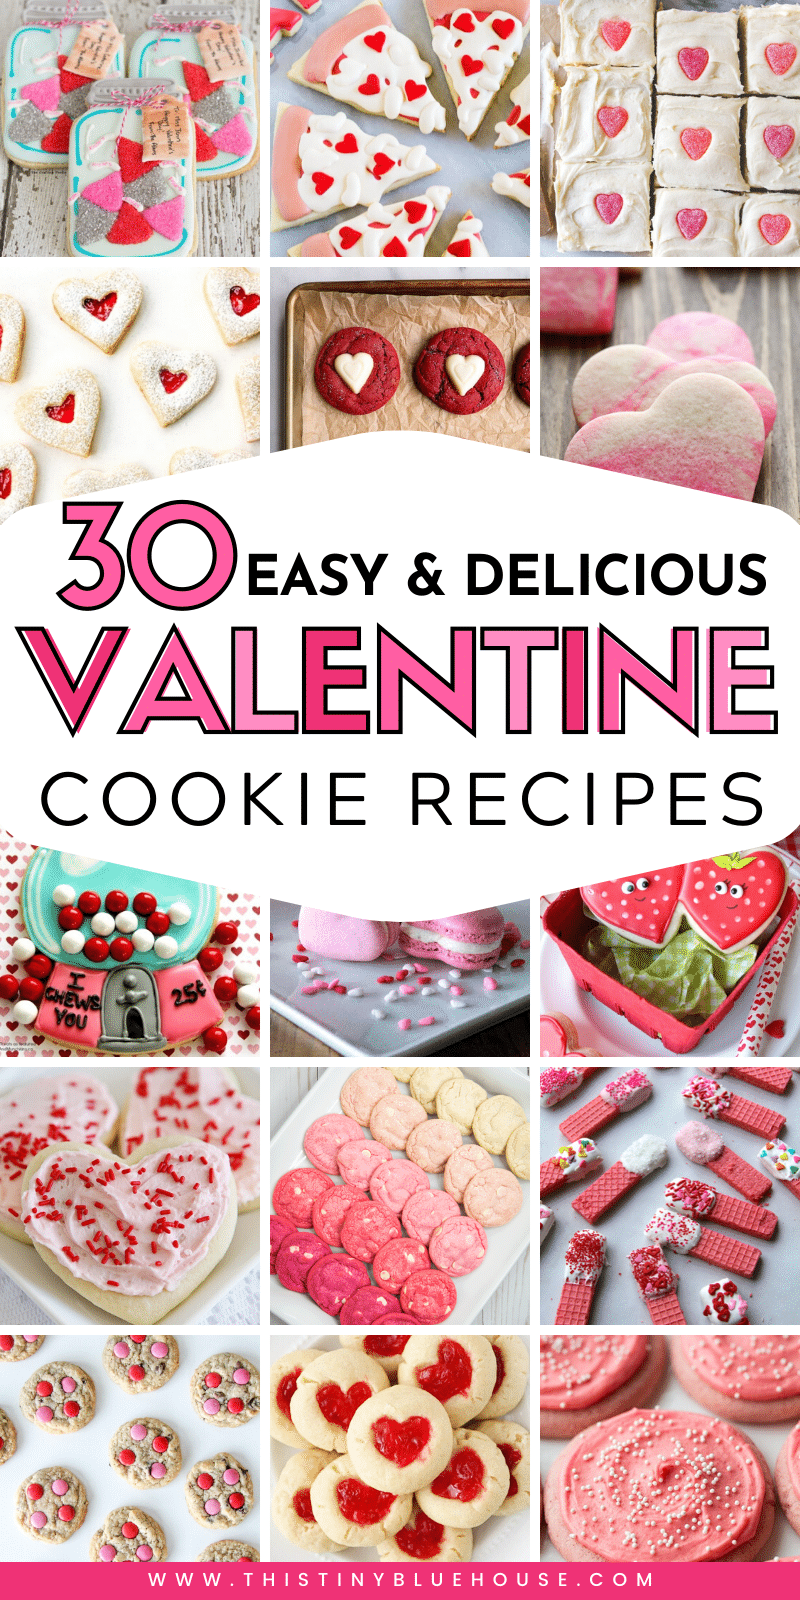 Spoil that special someone with one of these delicious Valentine's Day Cookies. Super simple to make these Valentine's Day cookies are the ultimate edible gift idea. #valentinesdaycookies #easyvalentinesdaycookies #valentinesdaycookiesrecipes